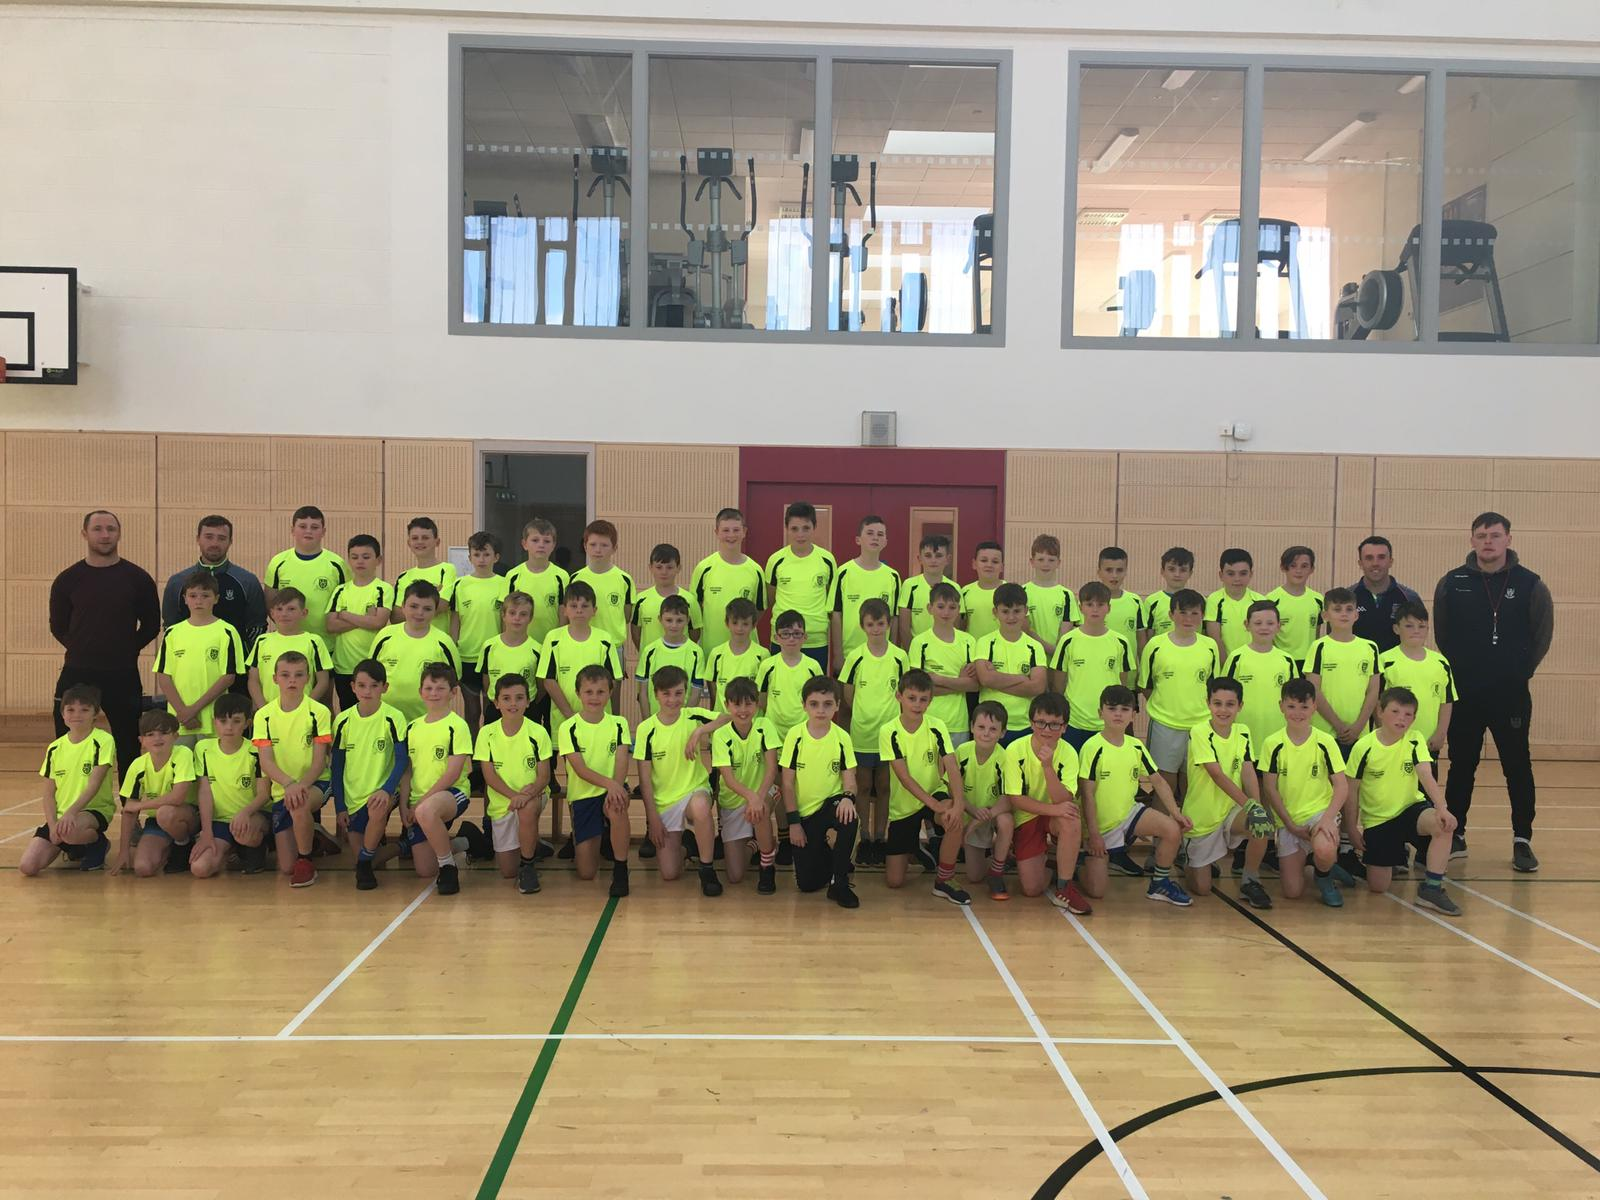 Monaghan Coaching & Games After School Programmes Come to a Close For 2019